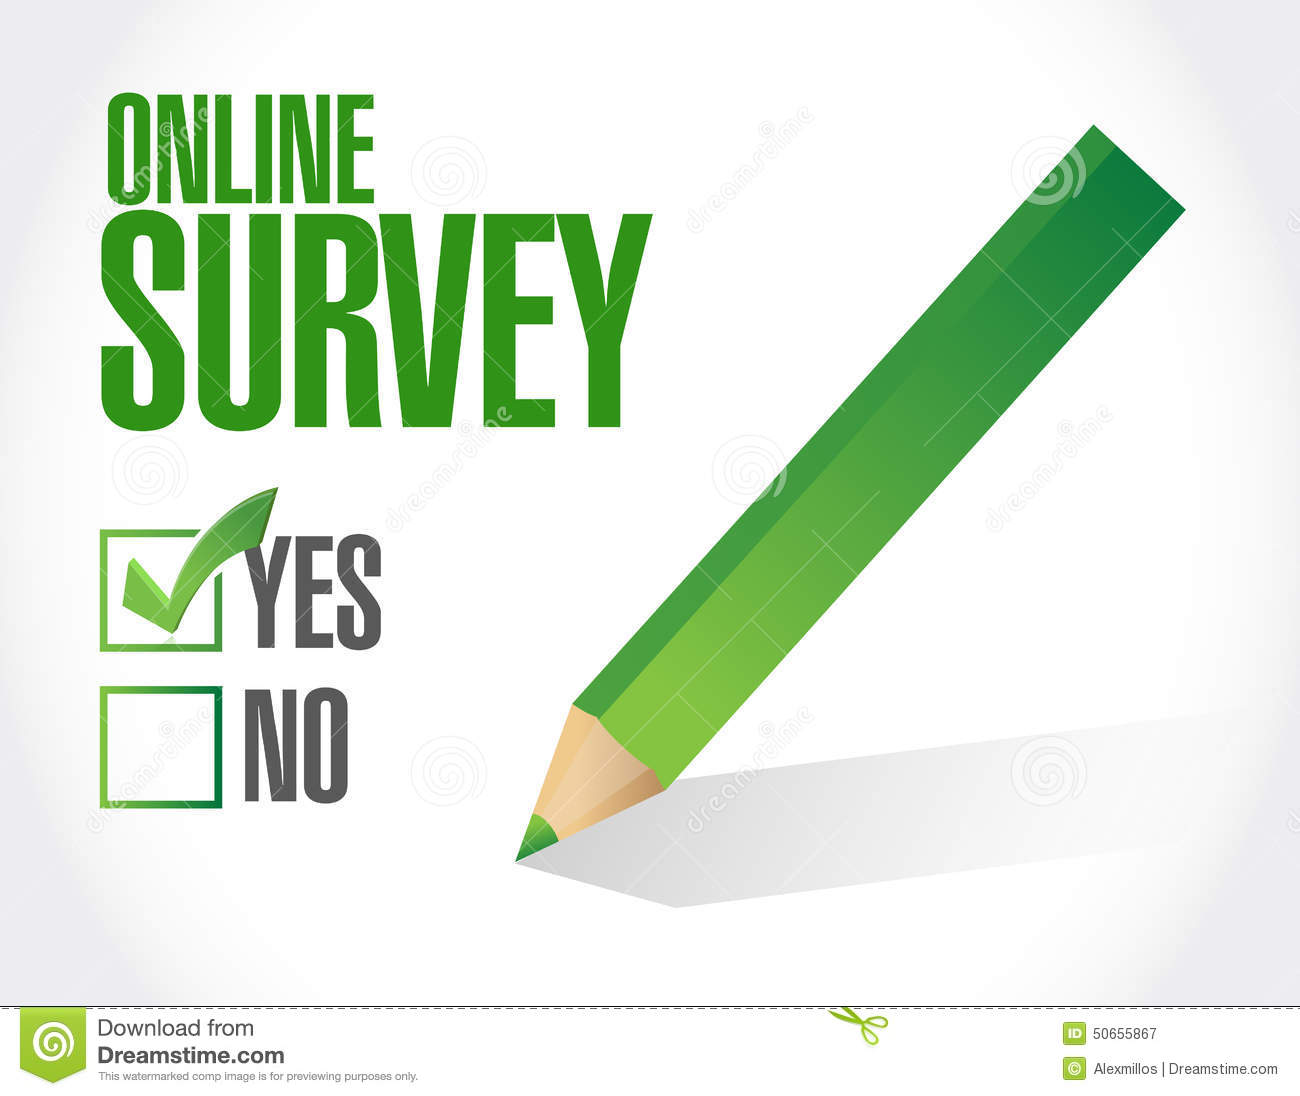 how to include image on online surveys